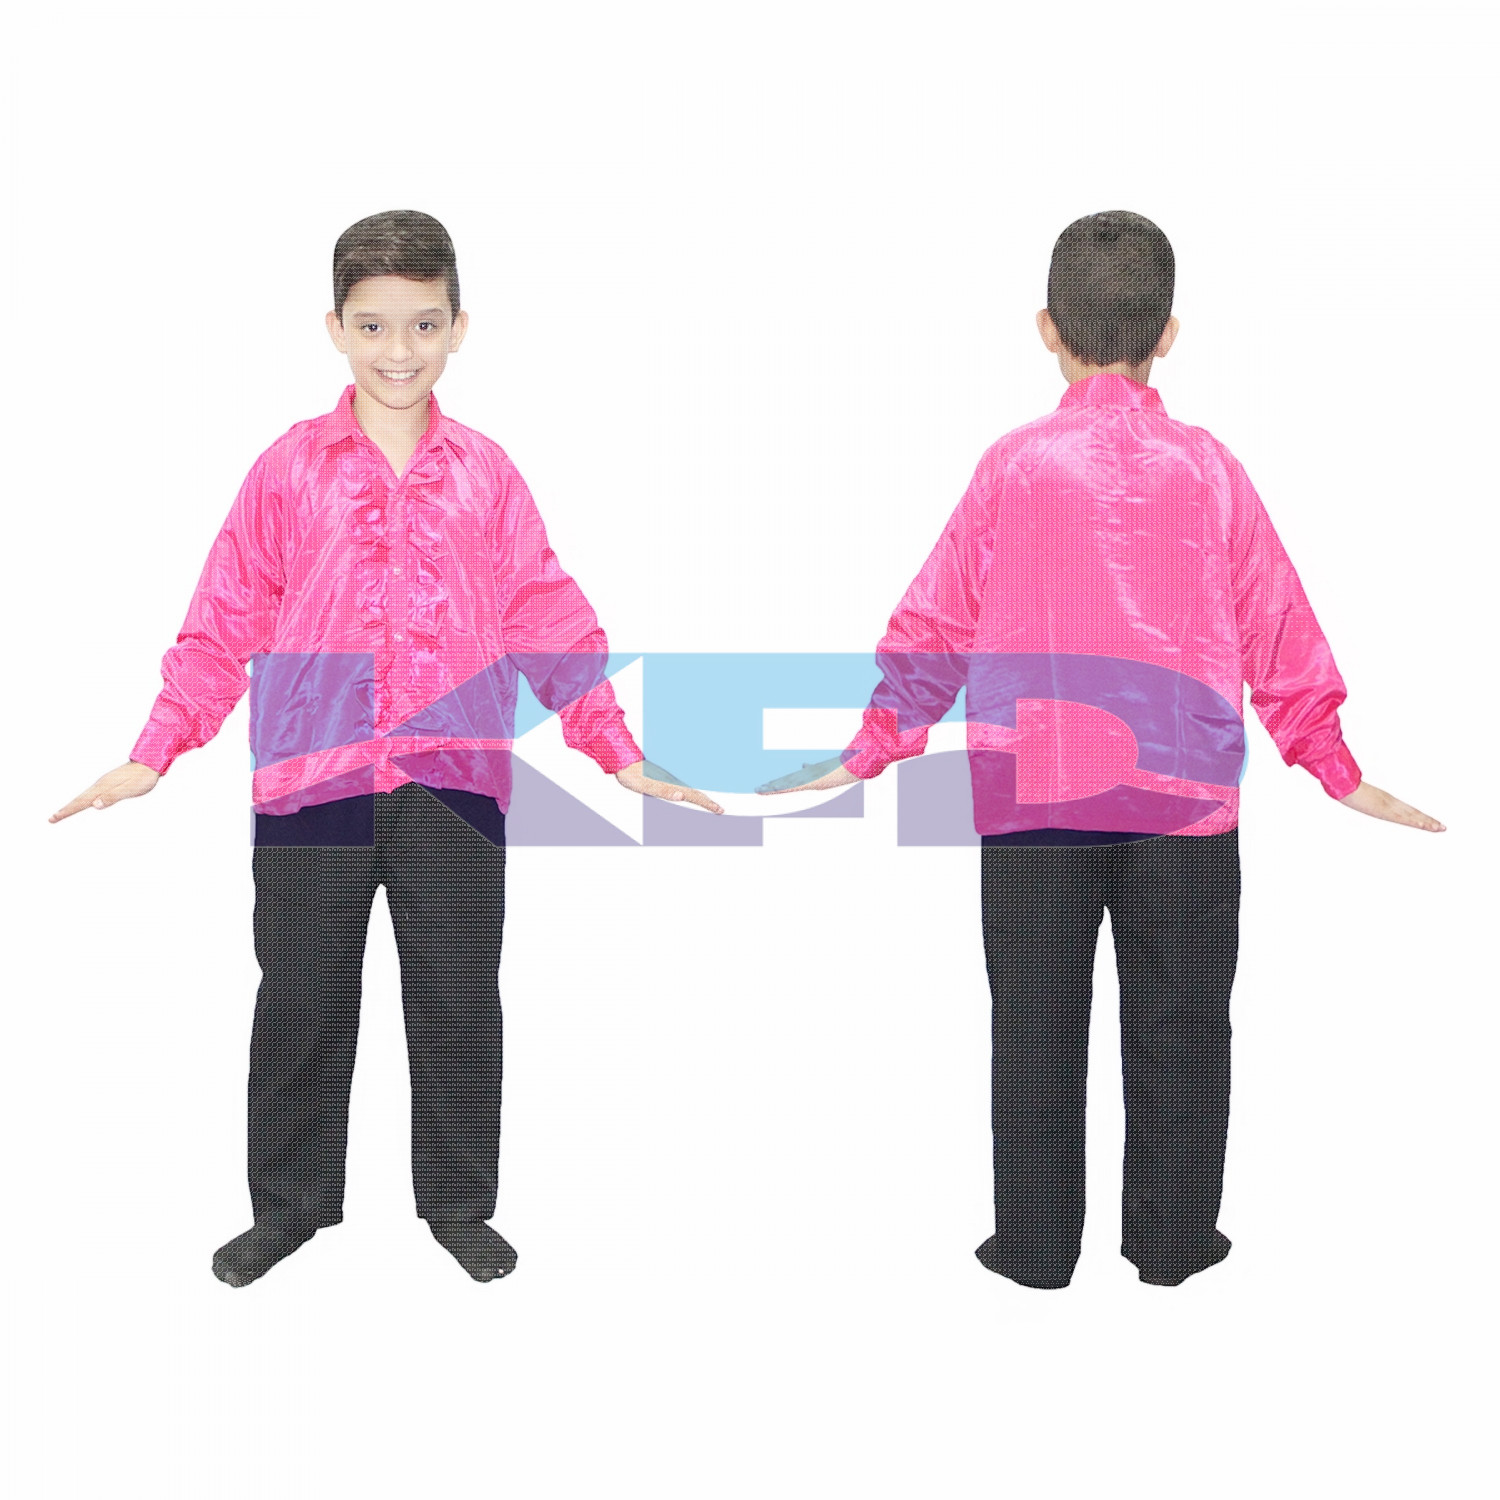 Mazanta frill Shirt fancy dress for kids,Western Costume for Annual function/Theme Party/Competition/Stage Shows/Birthday Party Dress laten dance/salsa dance